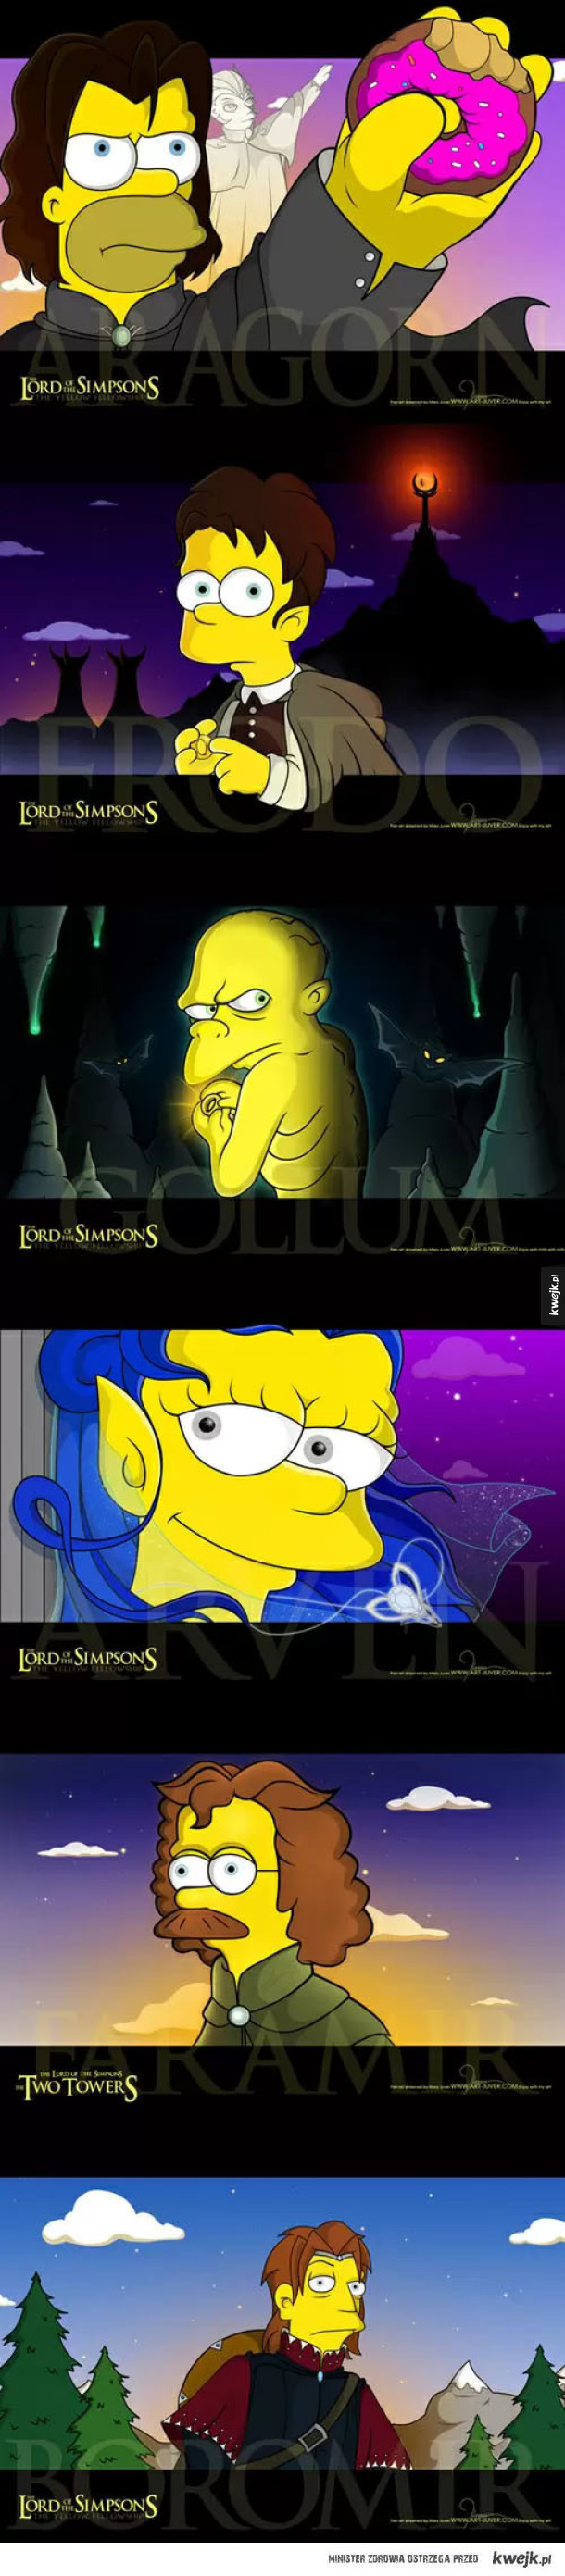 Lord of the Simpsons